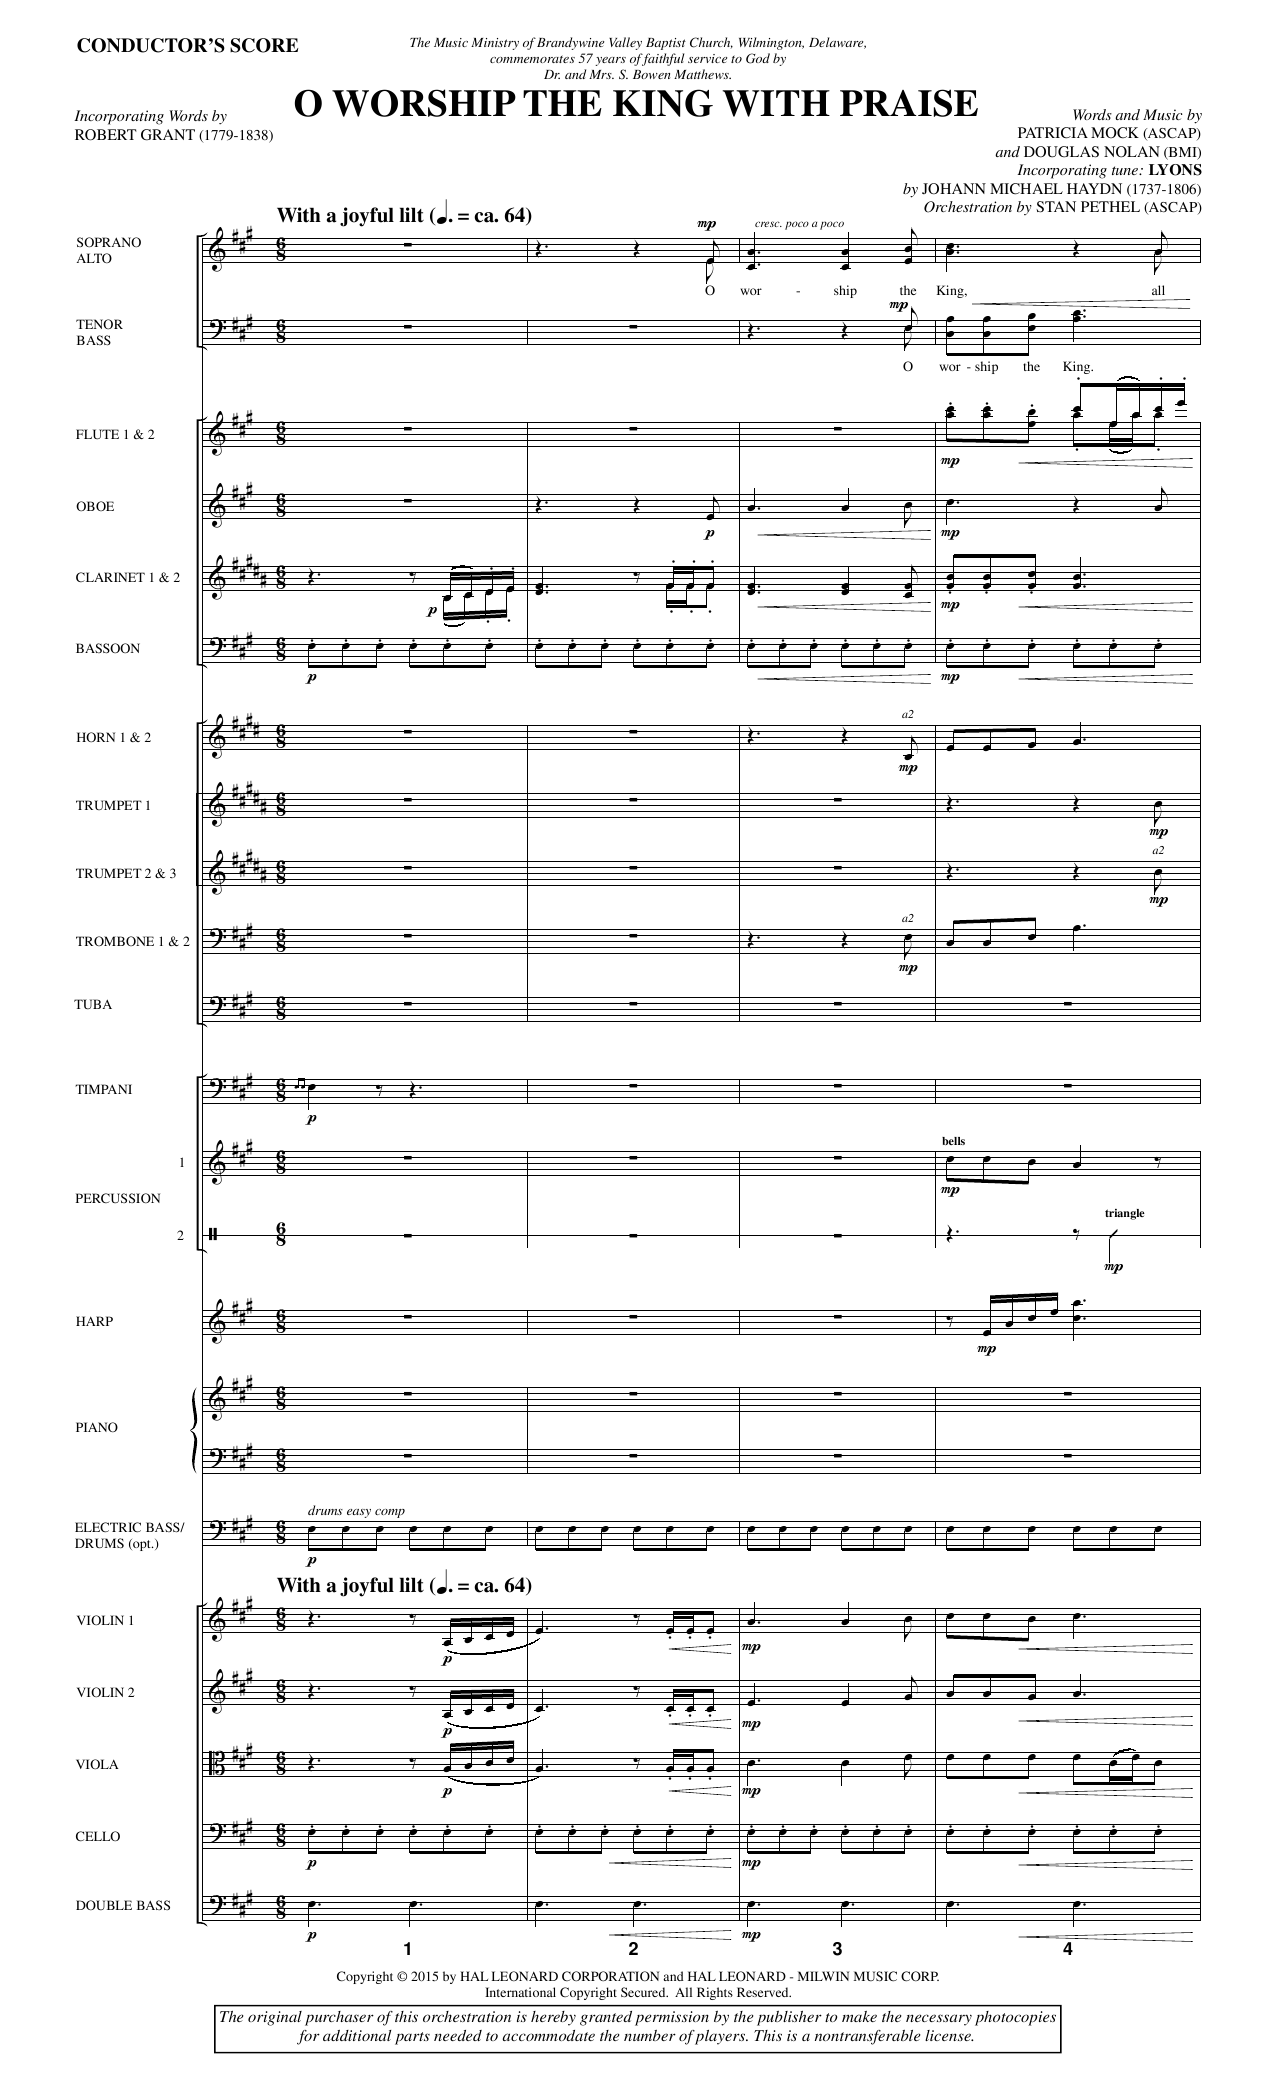 O Worship the King with Praise (COMPLETE) sheet music for orchestra/band by Douglas Nolan